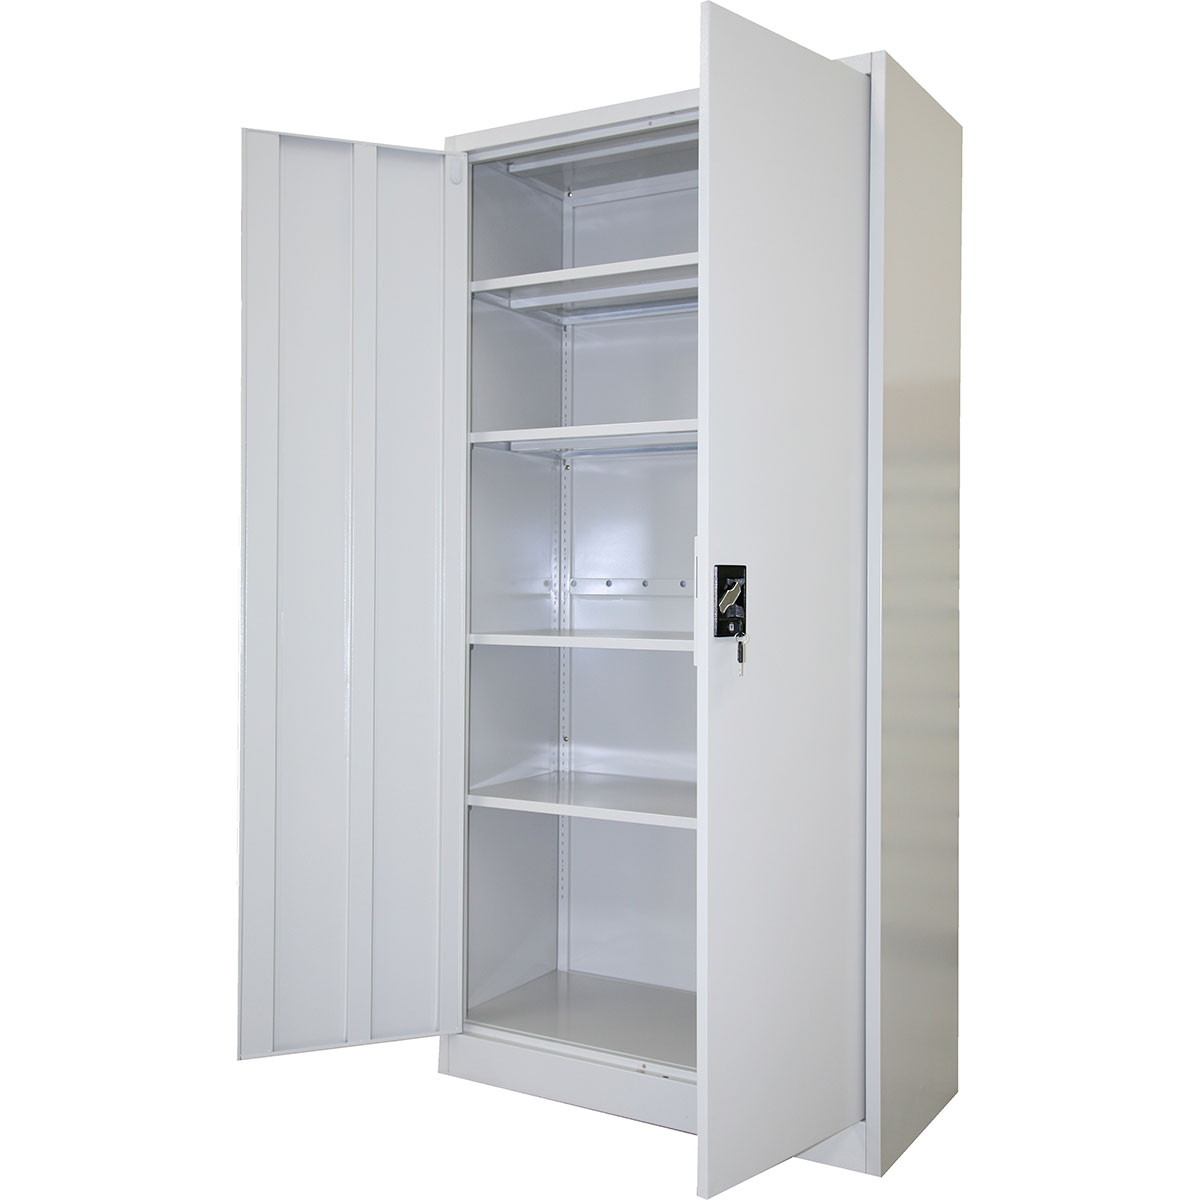 2 DOOR STORAGE CUPBOARDS